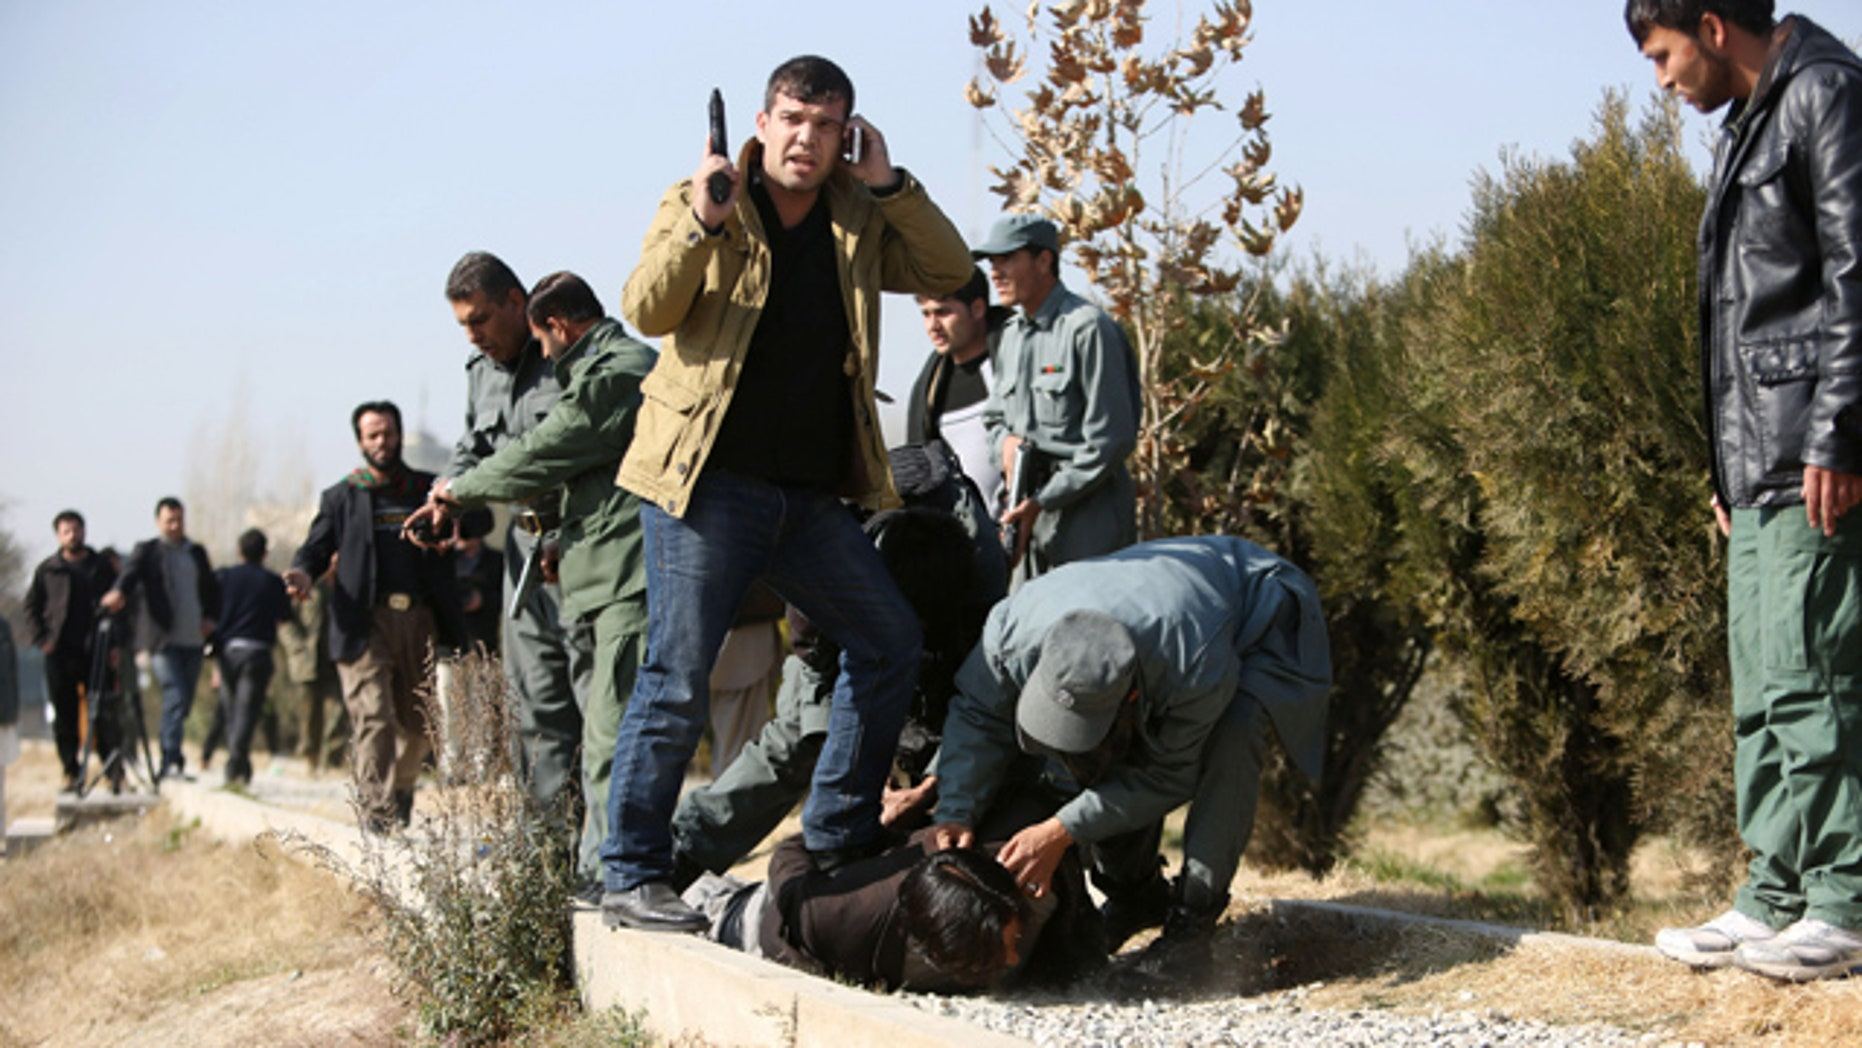 FILE - In this Tuesday, Nov. 25, 2014 file photo, Afghan security personnel arrest a suspect after a bomb explosion in Kabul, Afghanistan. (AP Photo/Rahmat Gul, File)